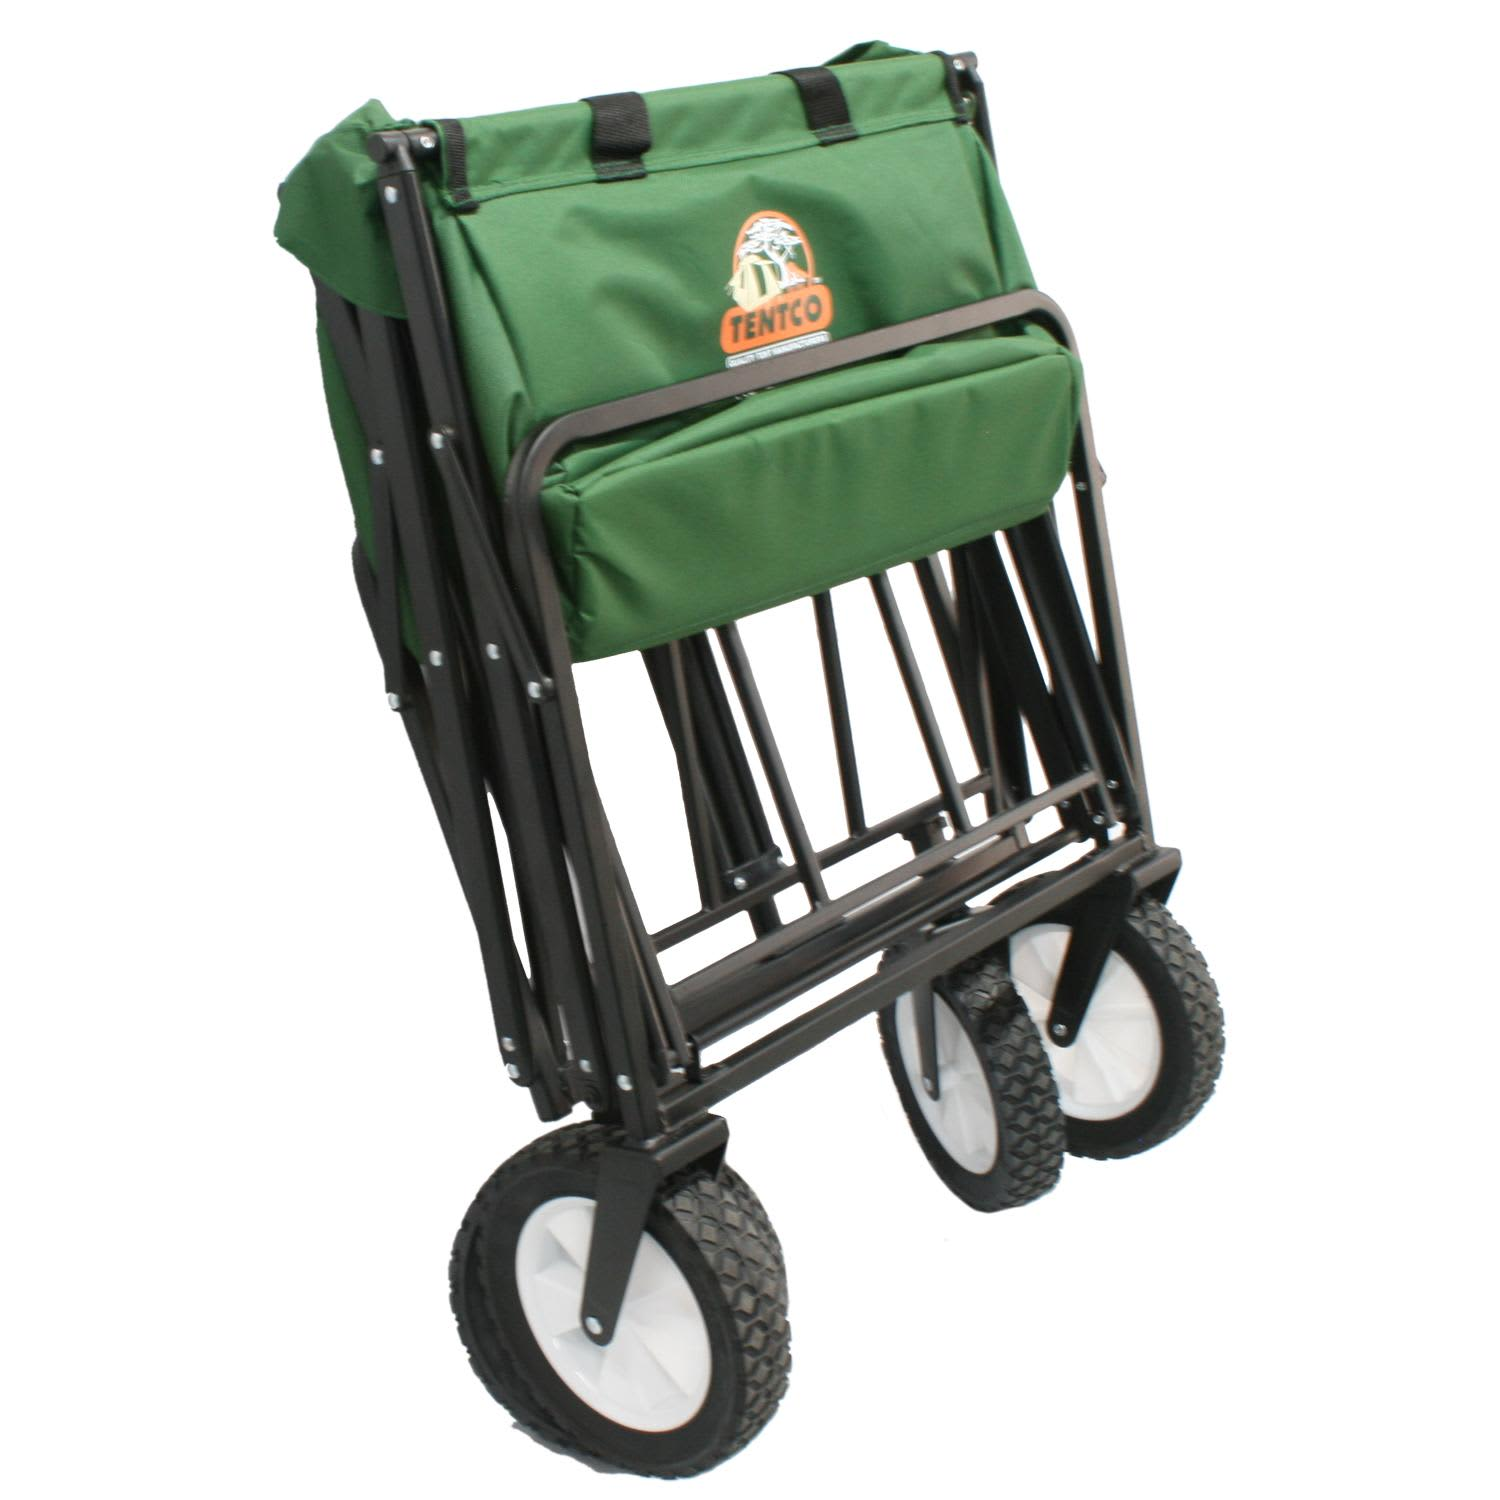 tentco-large-folding-trolley-tea075